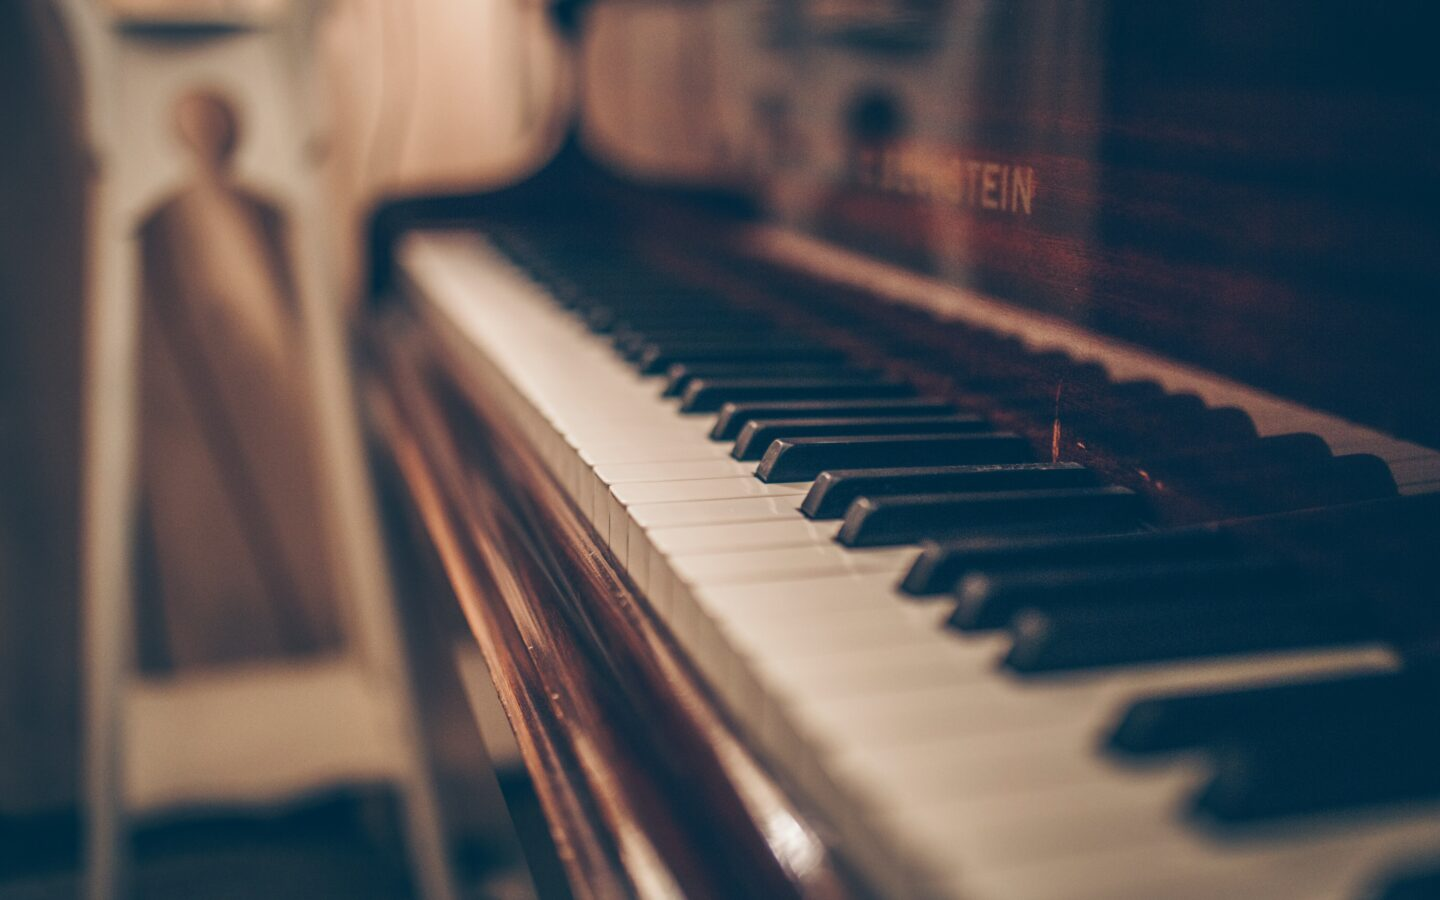 brown and white piano keys